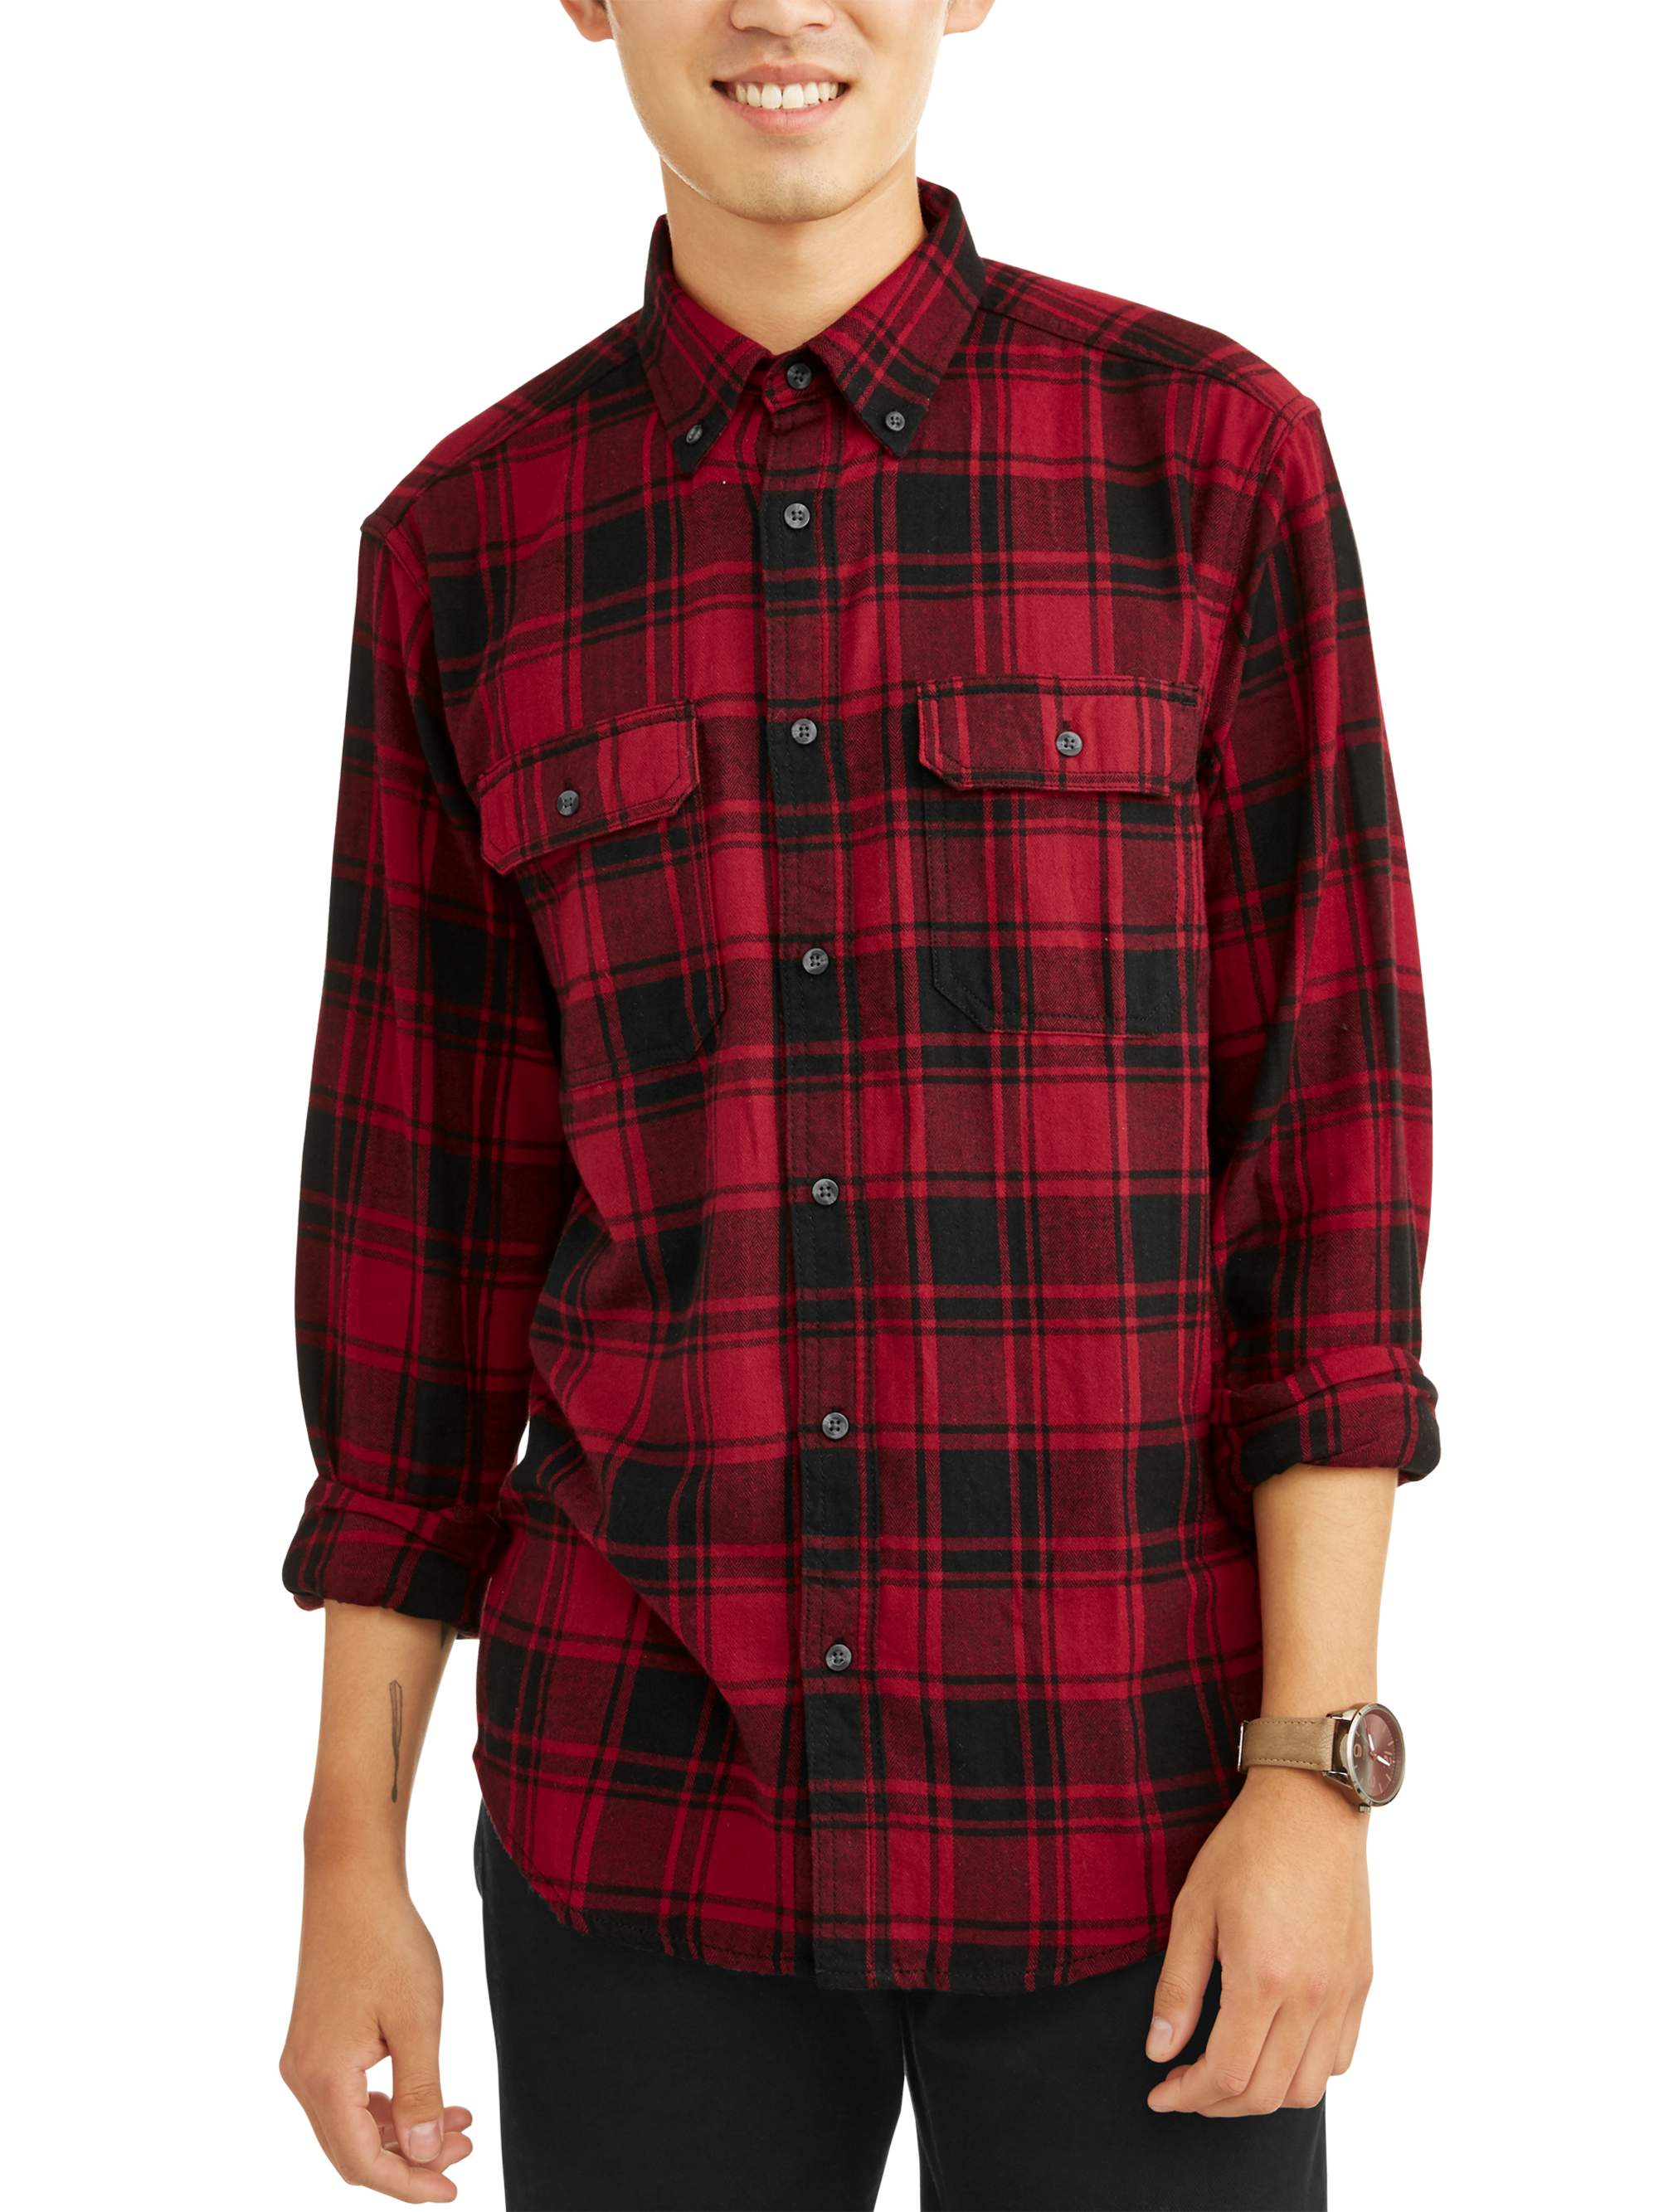 Men's and Big & Tall Long Sleeve Flannel Shirt, up to size...